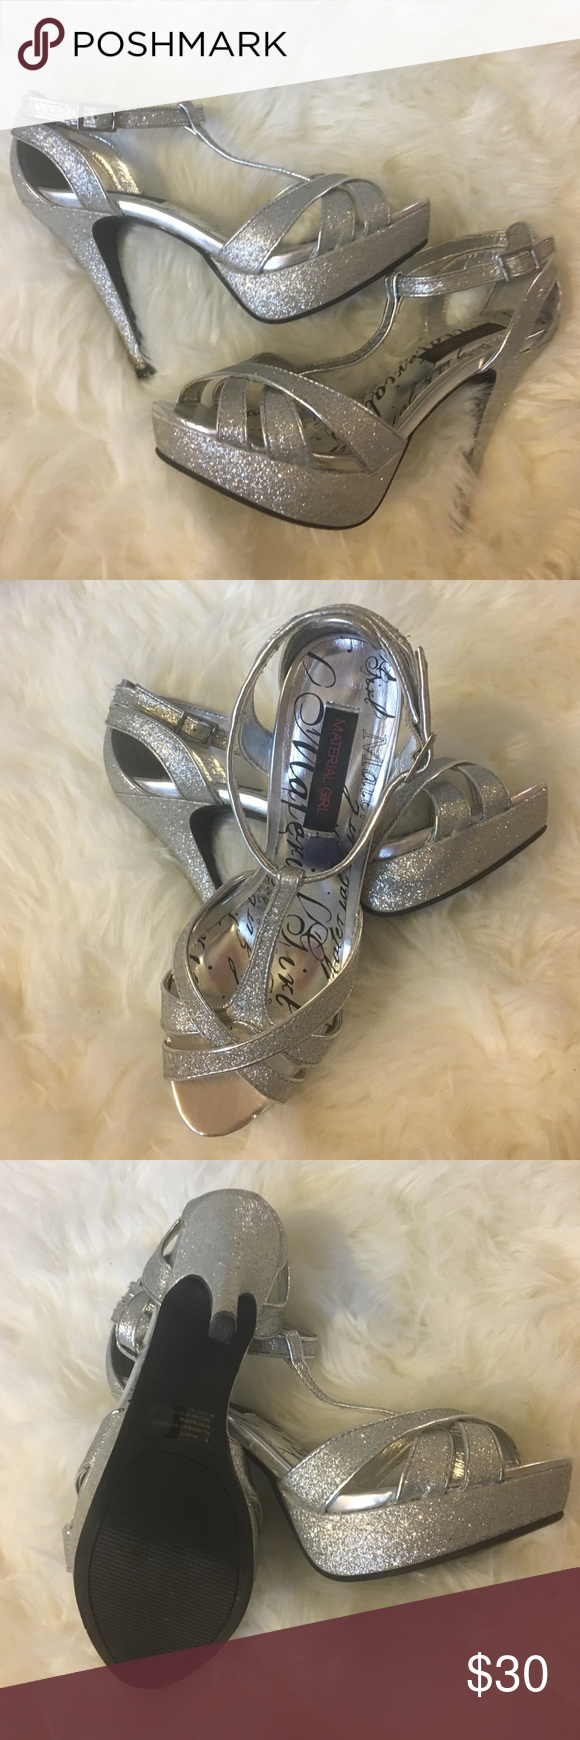 Material Girl Silver Glitter Pumps Size 8 pumps. Perfect condition. Silver sparkle, platform pumps. Material Girl Shoes Platforms